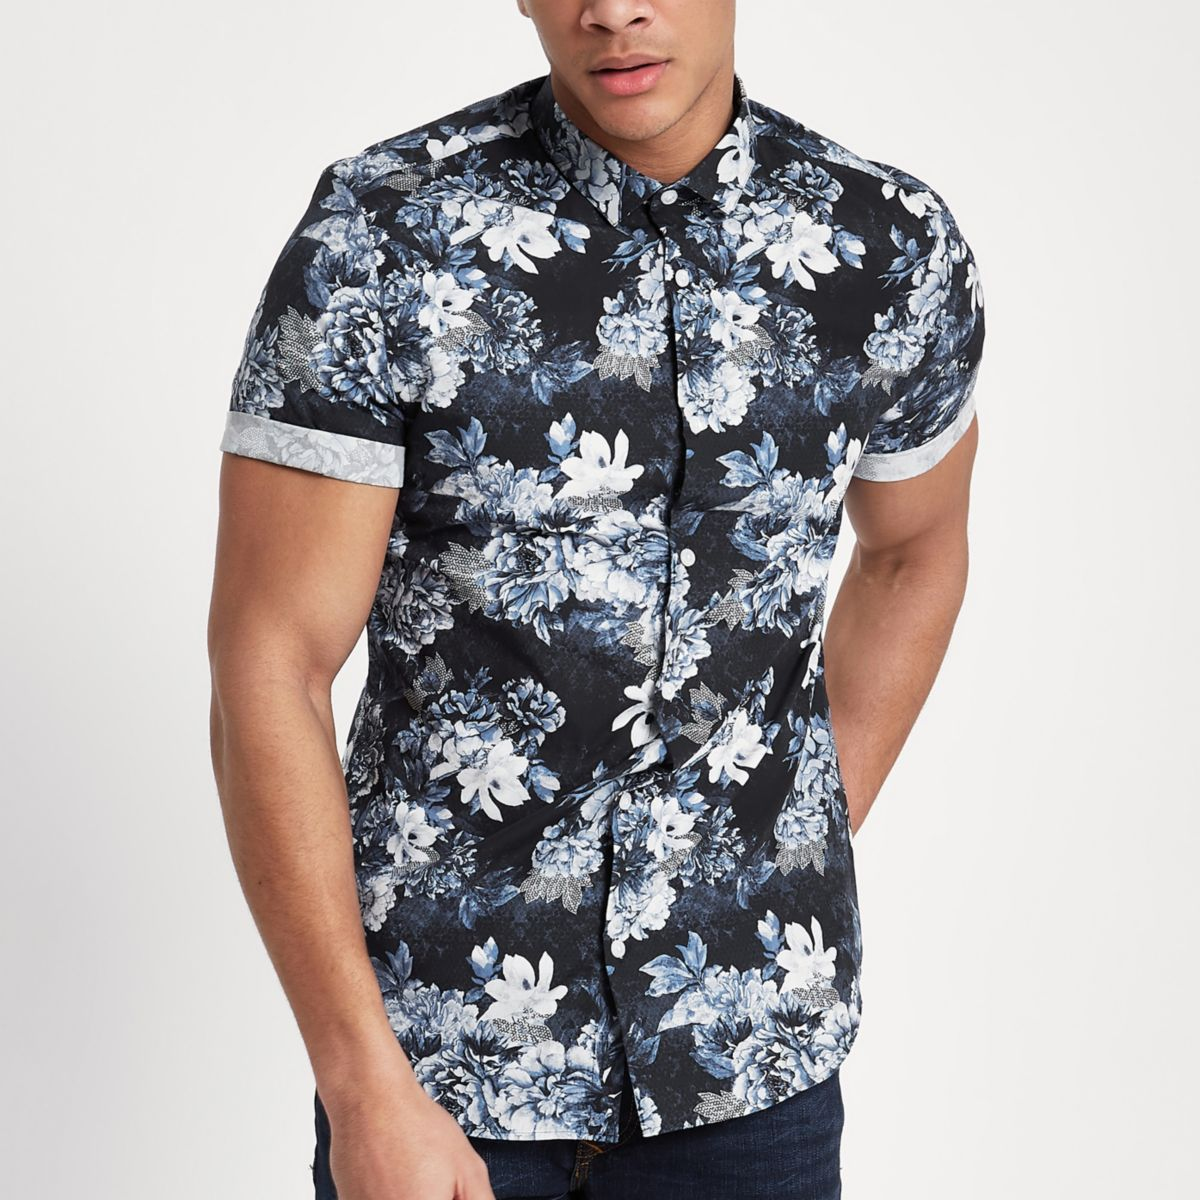 Navy floral slim fit short sleeve shirt shirts sale men for Mens slim fit short sleeve shirt